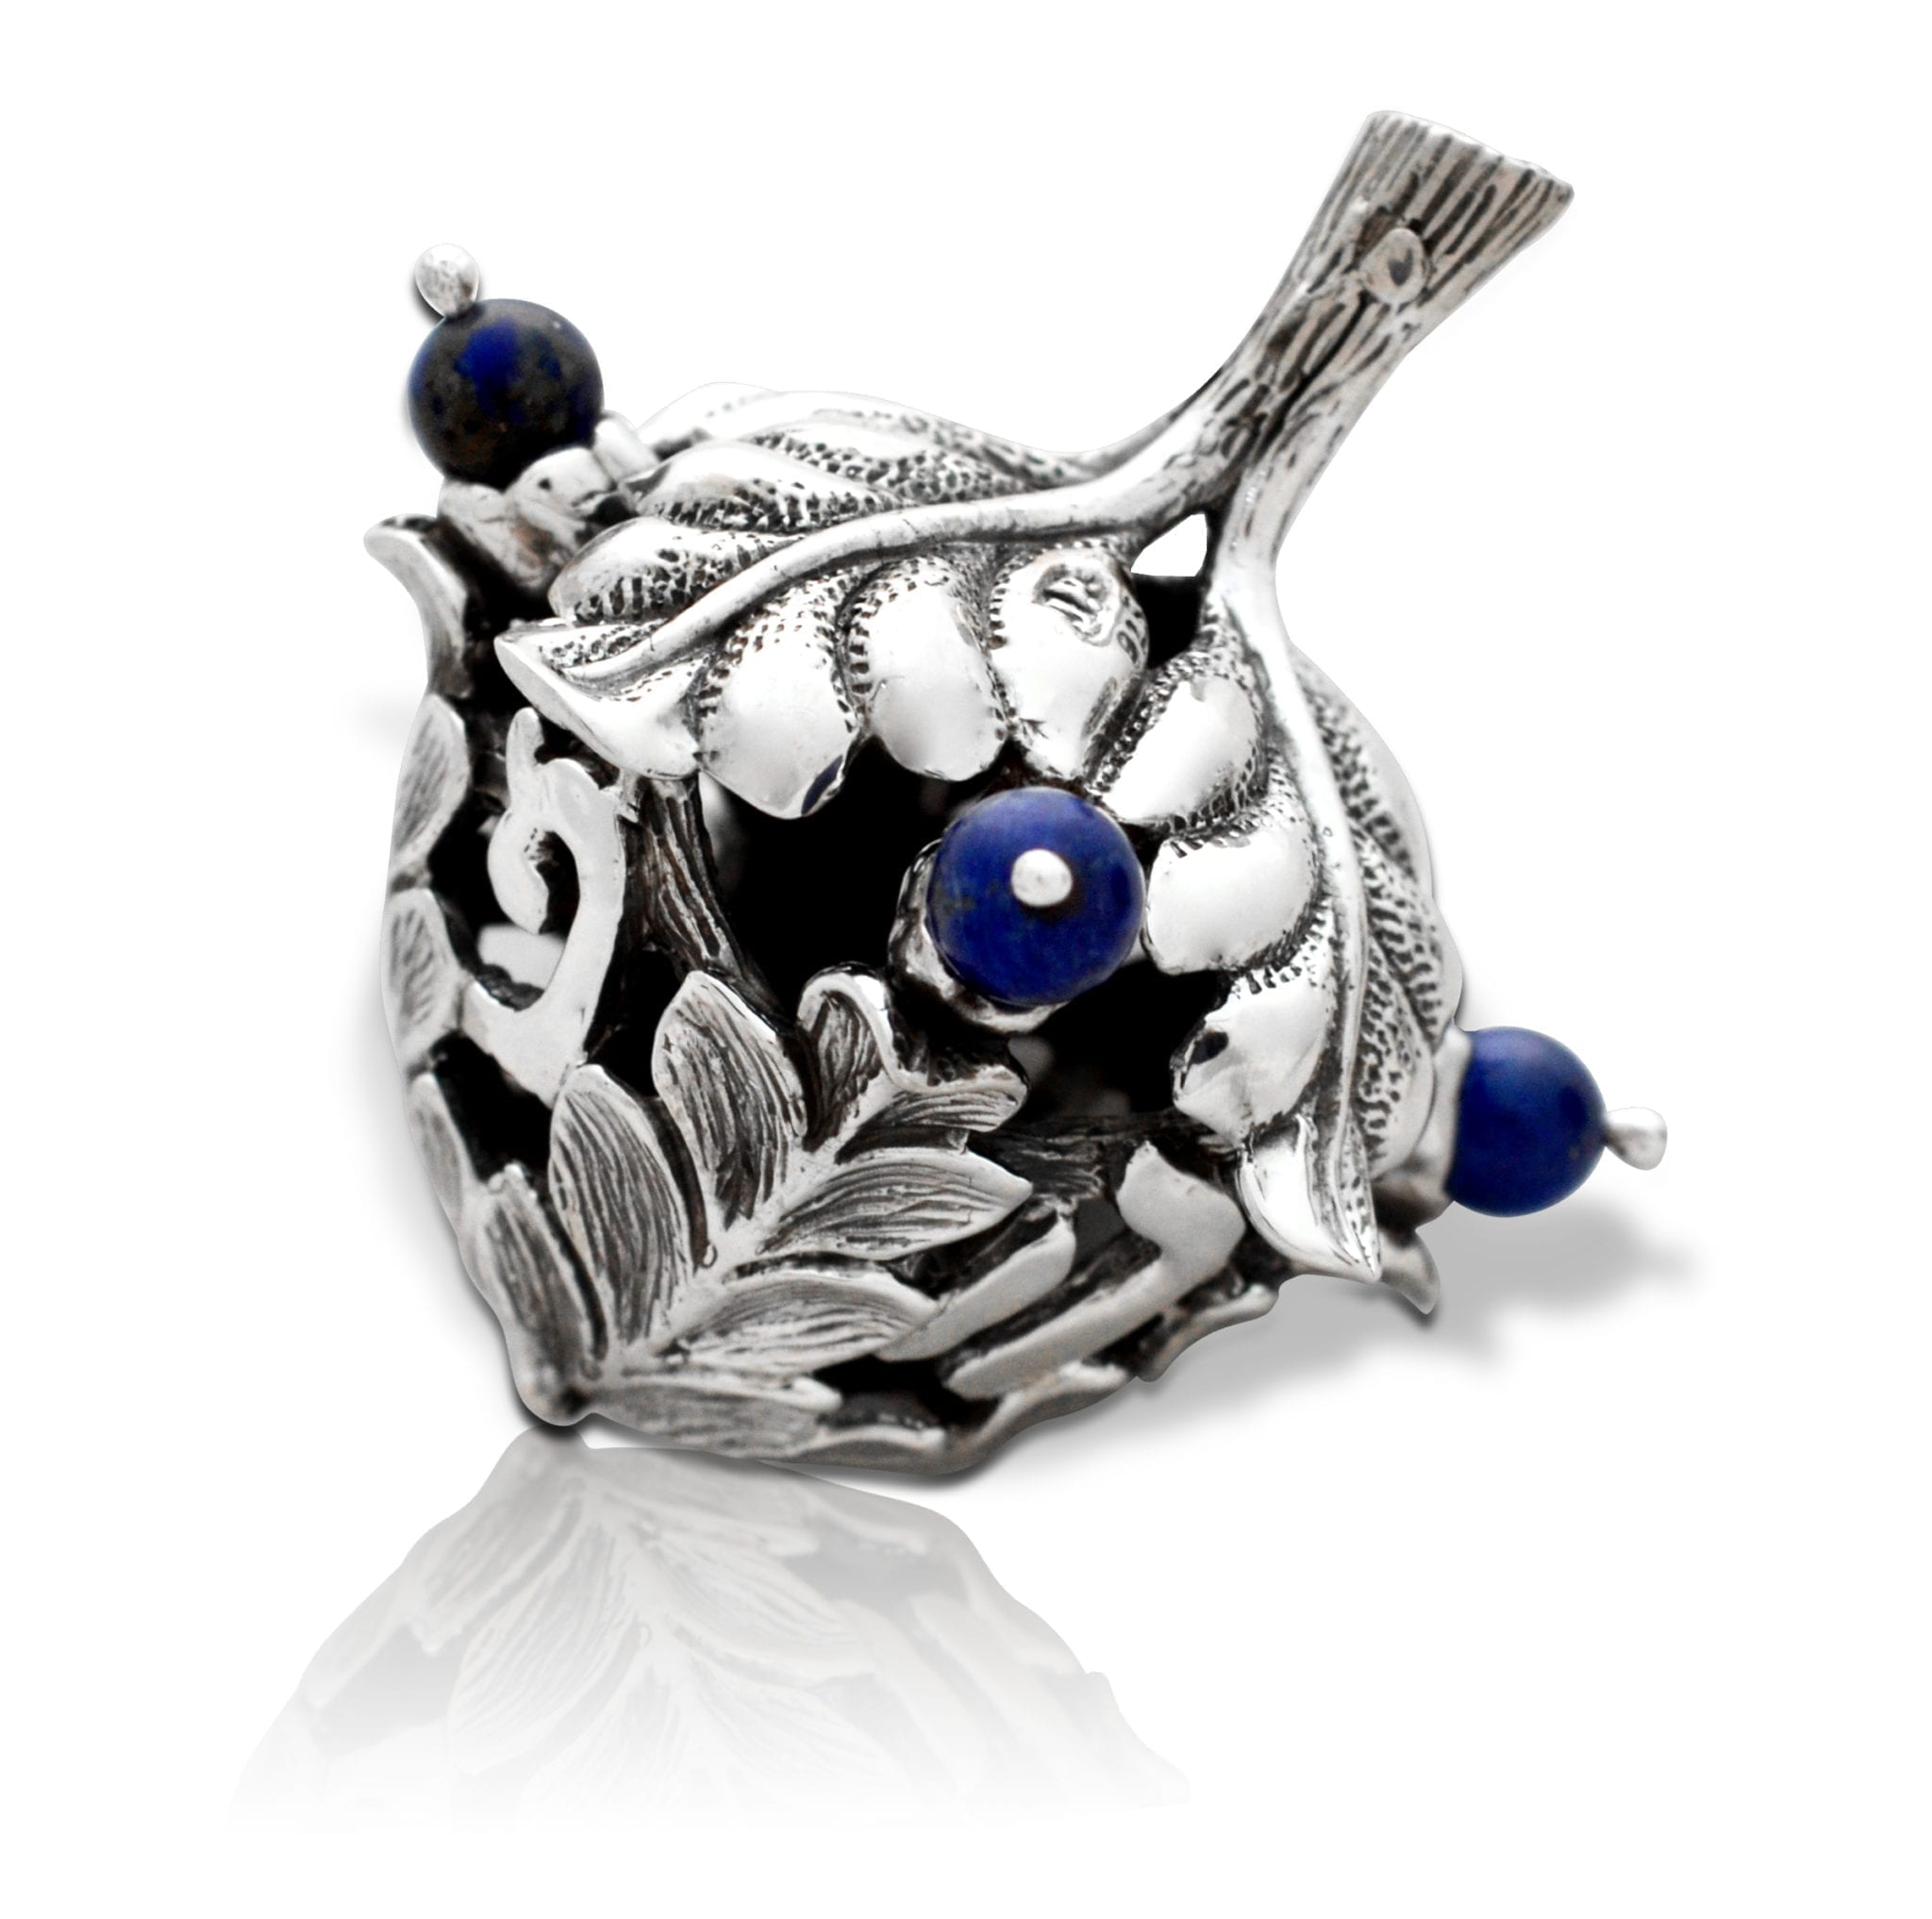 nature-inspired sterling silver dreidel. Sevinon shaped like an acorn with semi-precious stones. Hannukah Judaica gifts made in Israel